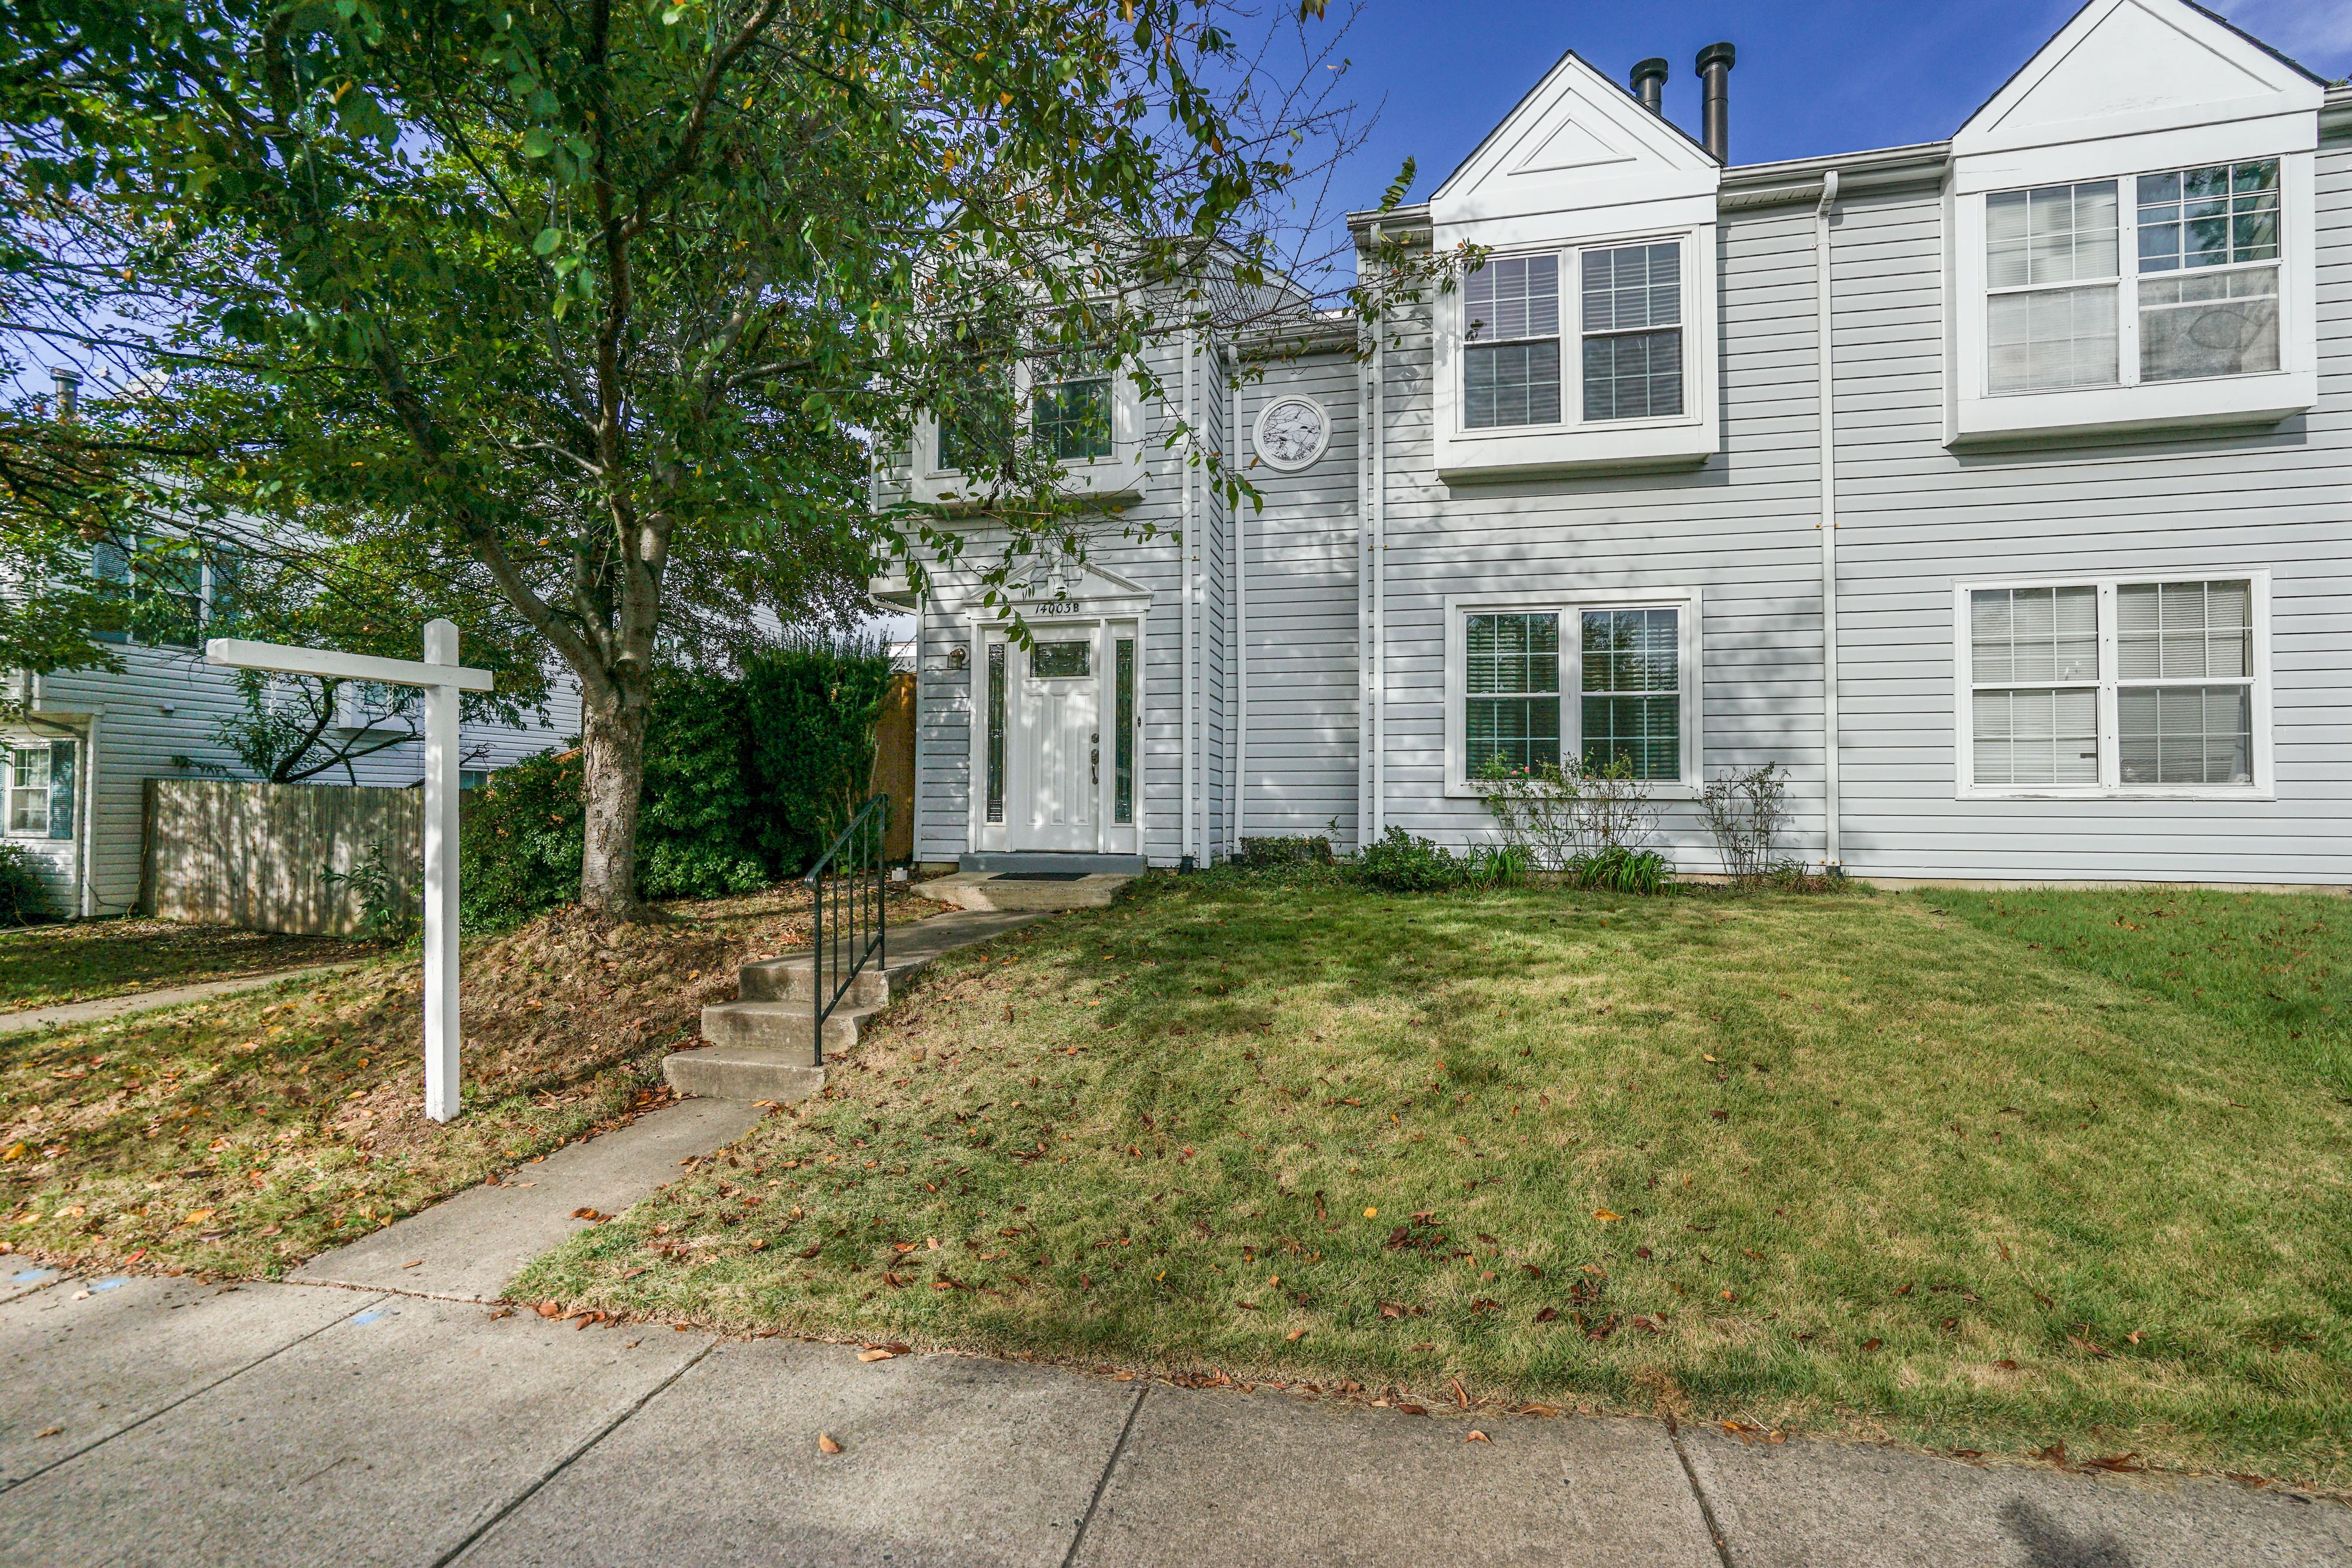 NEW LISTING: 3 BDR End Unit Townhome With Large Patio in Centreville